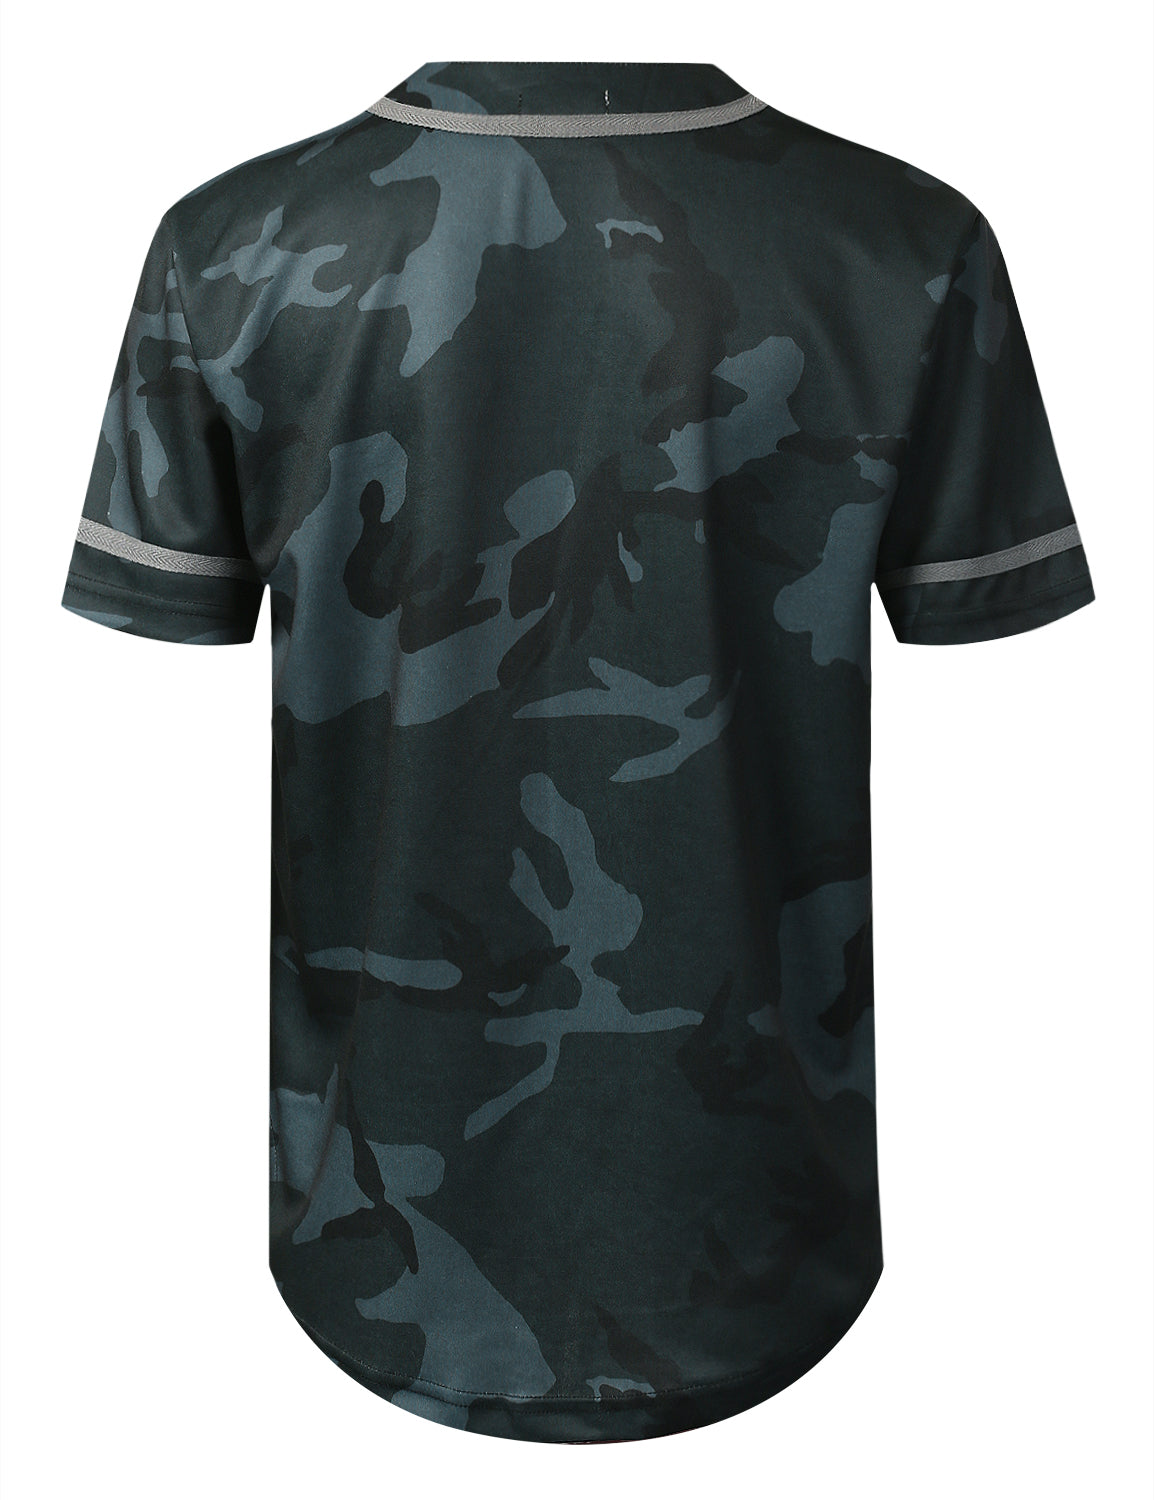 BLACK Camo Baseball Jersey T-shirt - URBANCREWS